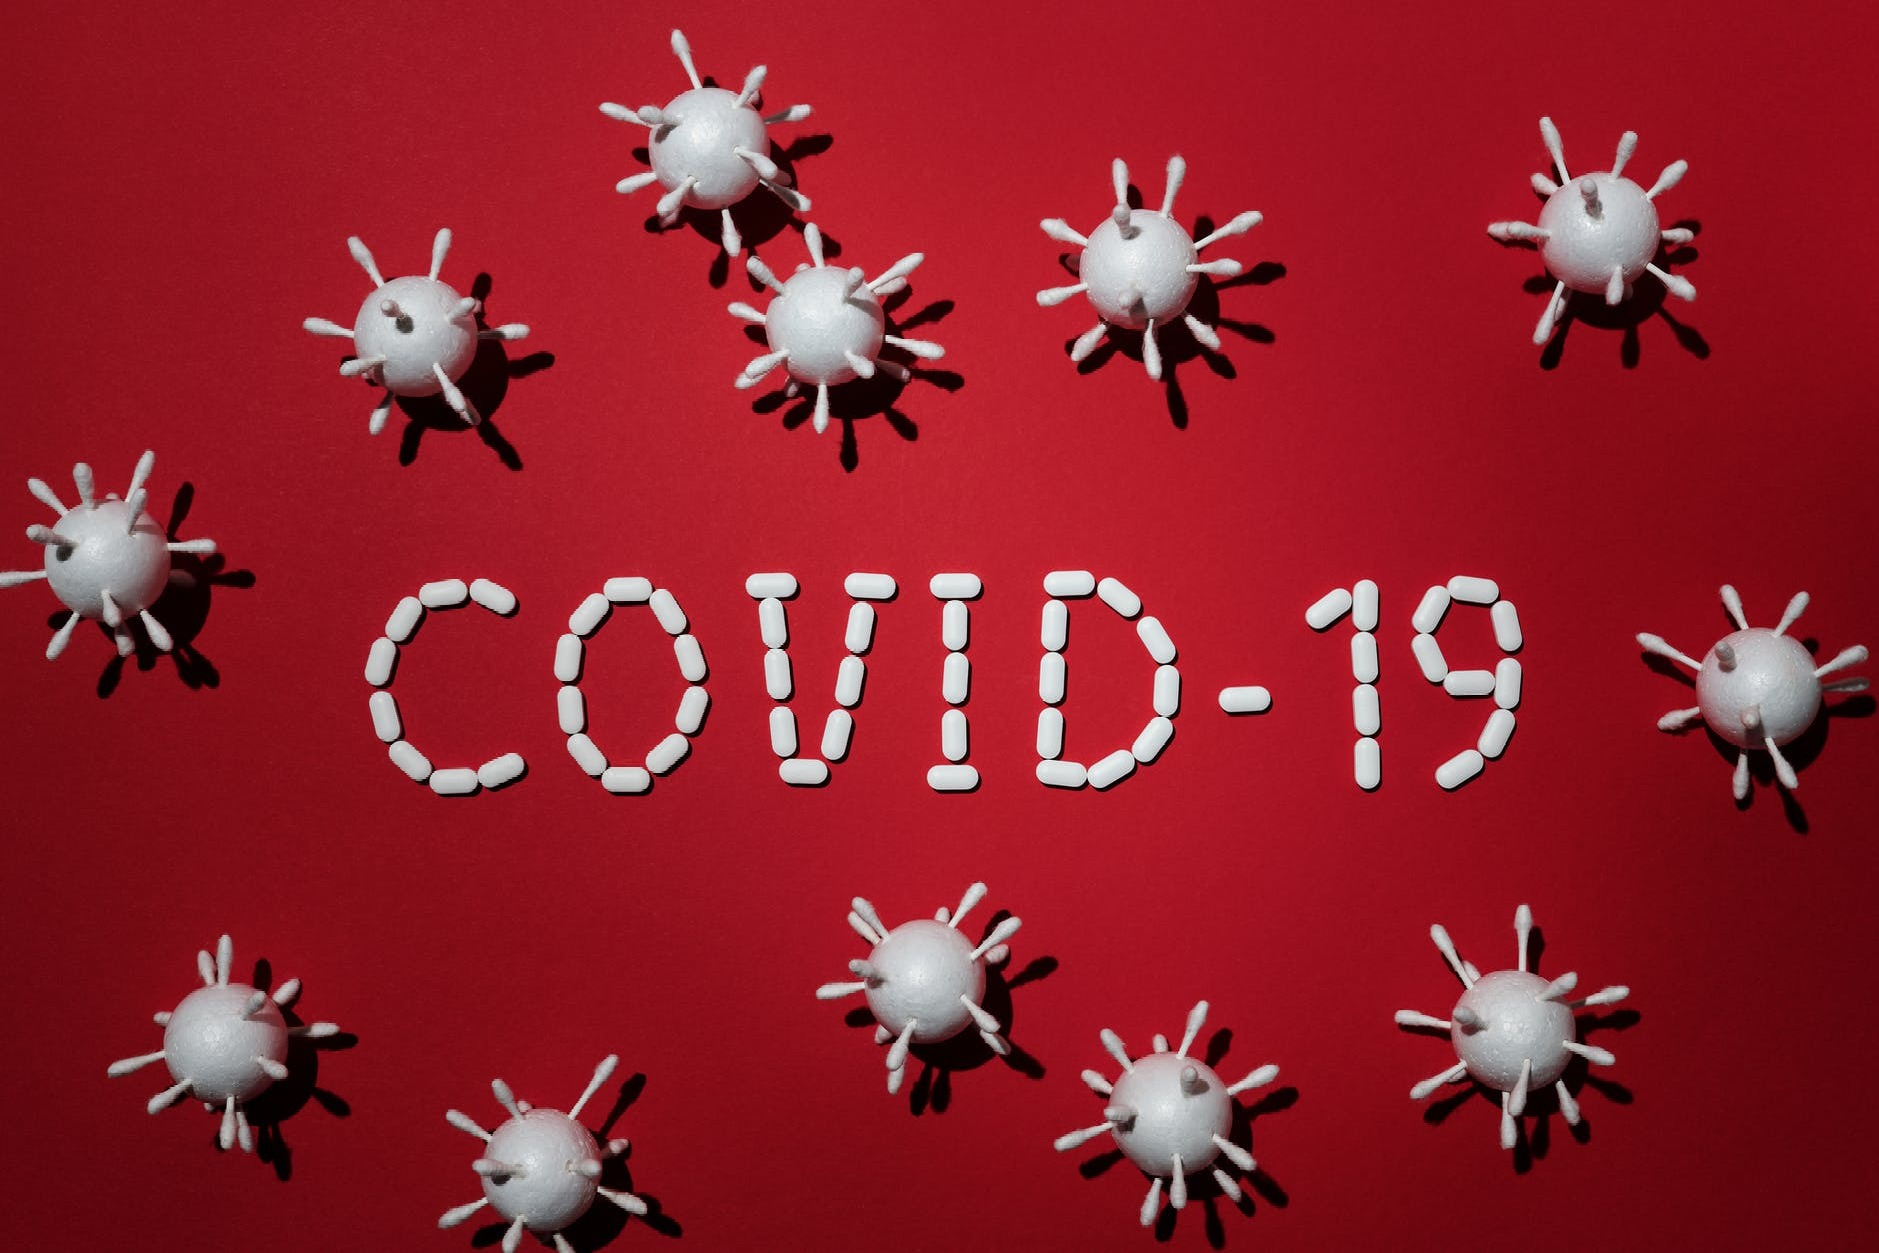 434 deaths and 19148 new COVID19 cases in the last 24 hours